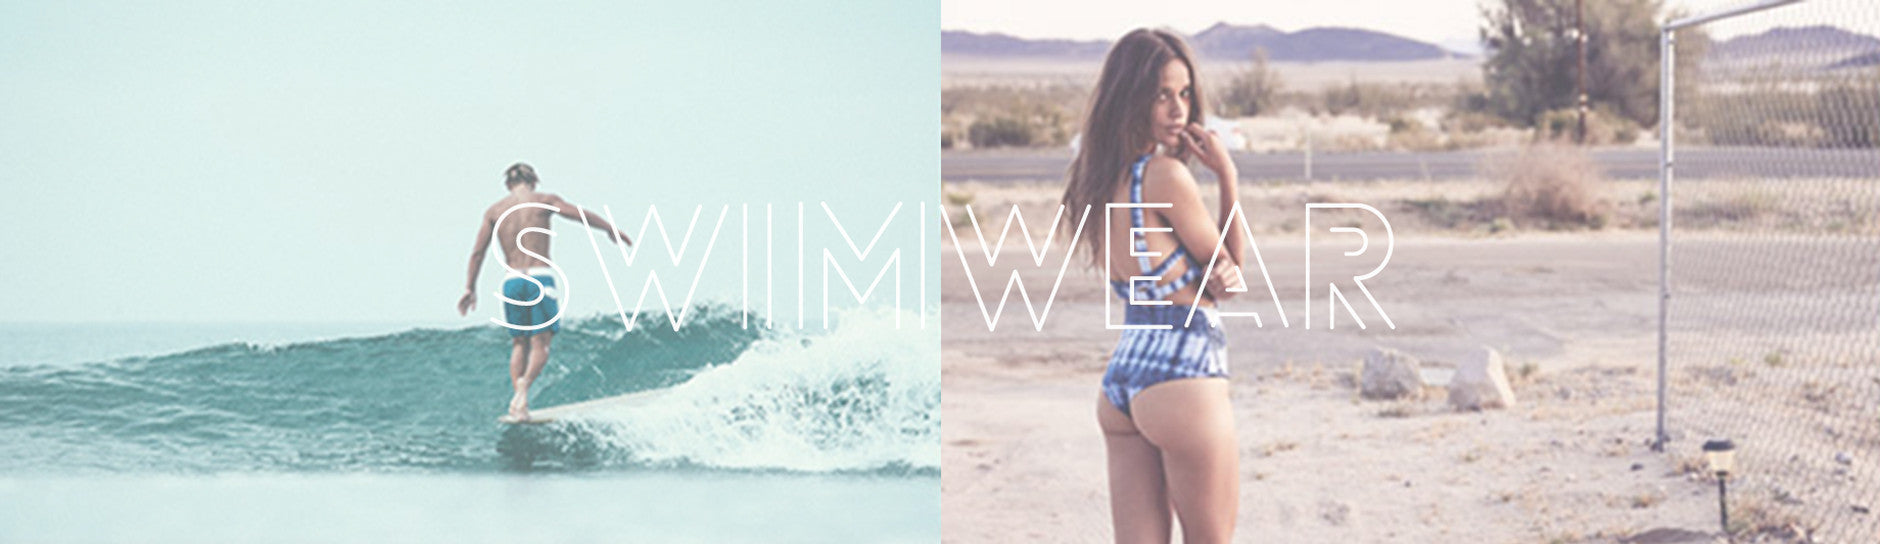 Swimwear Header - Almasty Outdoor Co.